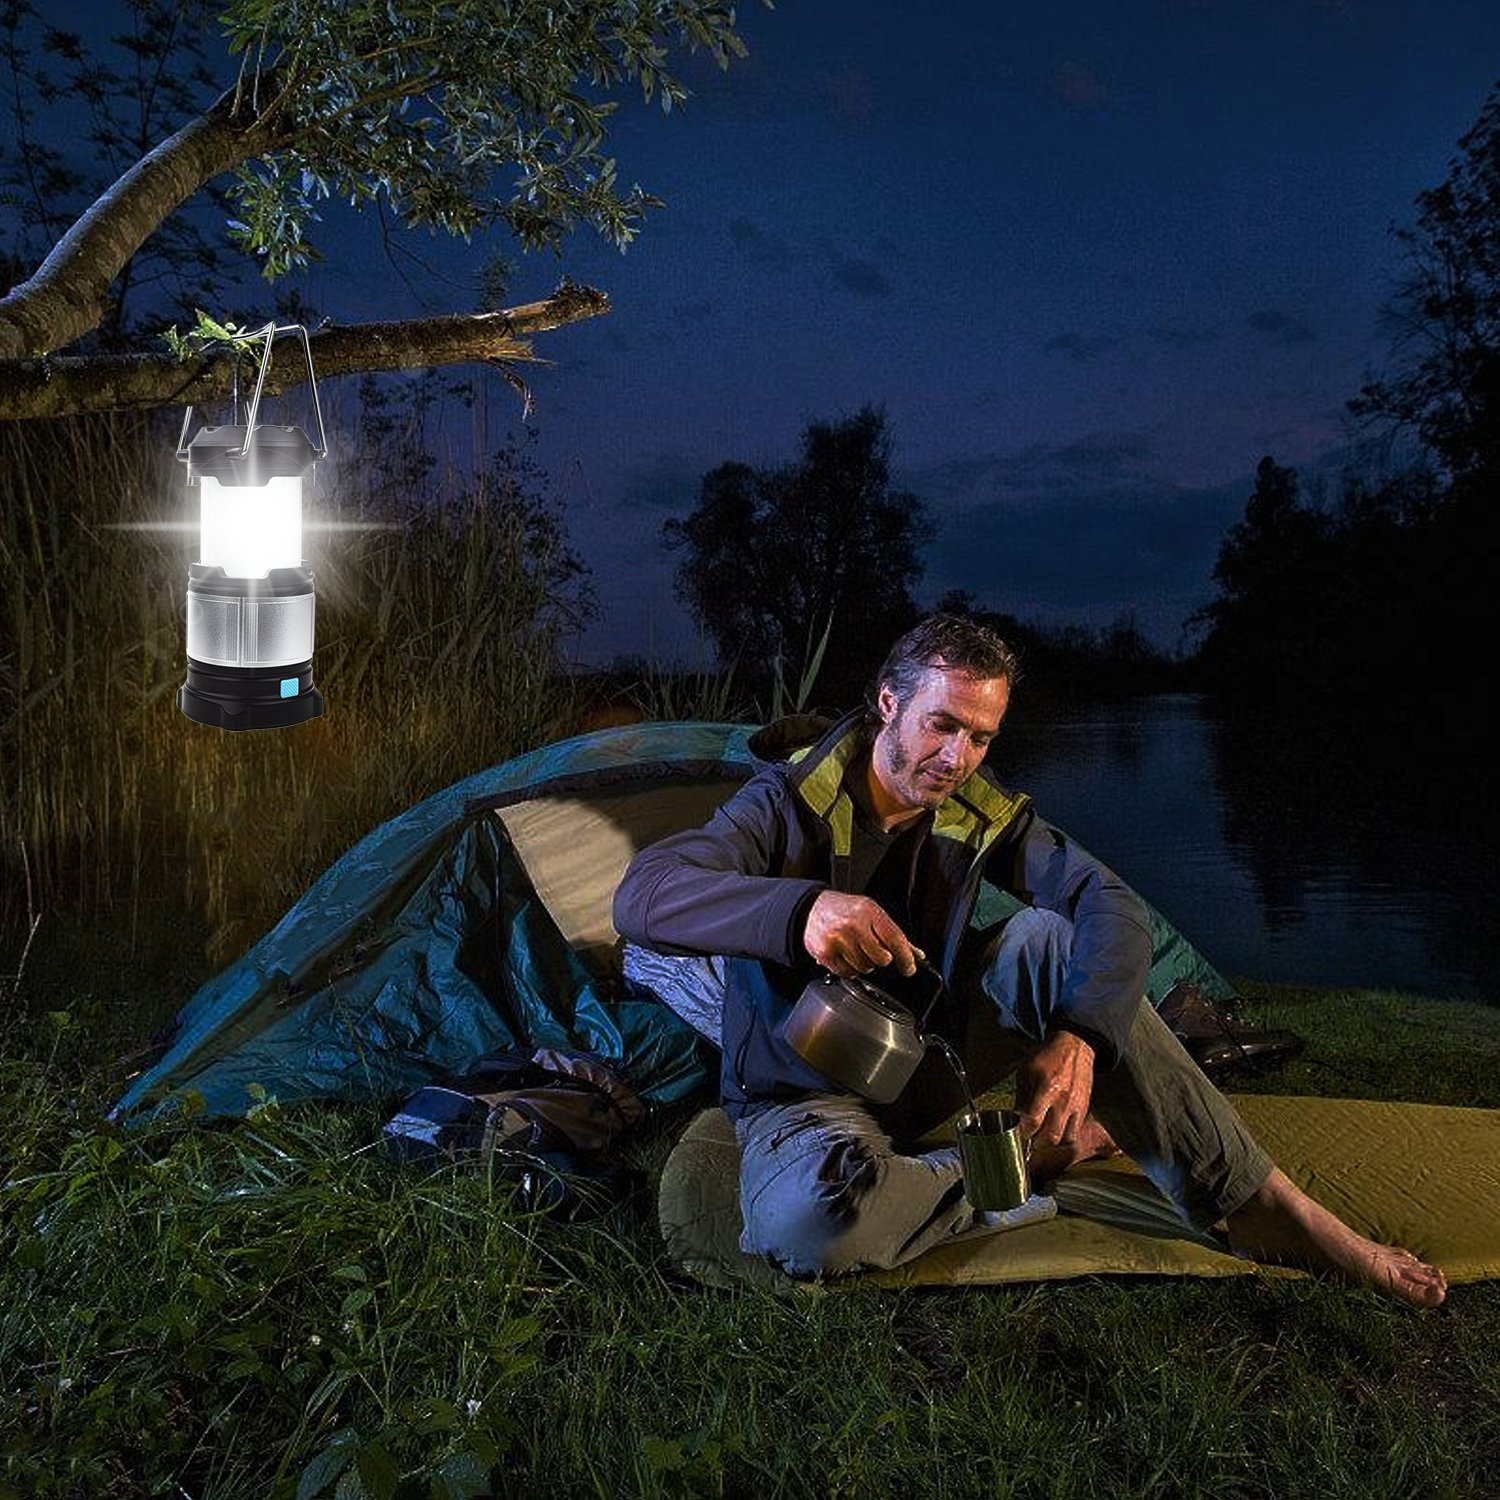 Alcoon Rechargeable LED Camping Lantern Light Lamp with 5600mAh Power Bank, Portable Collapsible Waterproof Outdoor Light with 18650 Li-ion Batteries for Camping Traveling Tent, Emergency, Outage by Alcoon (Image #7)